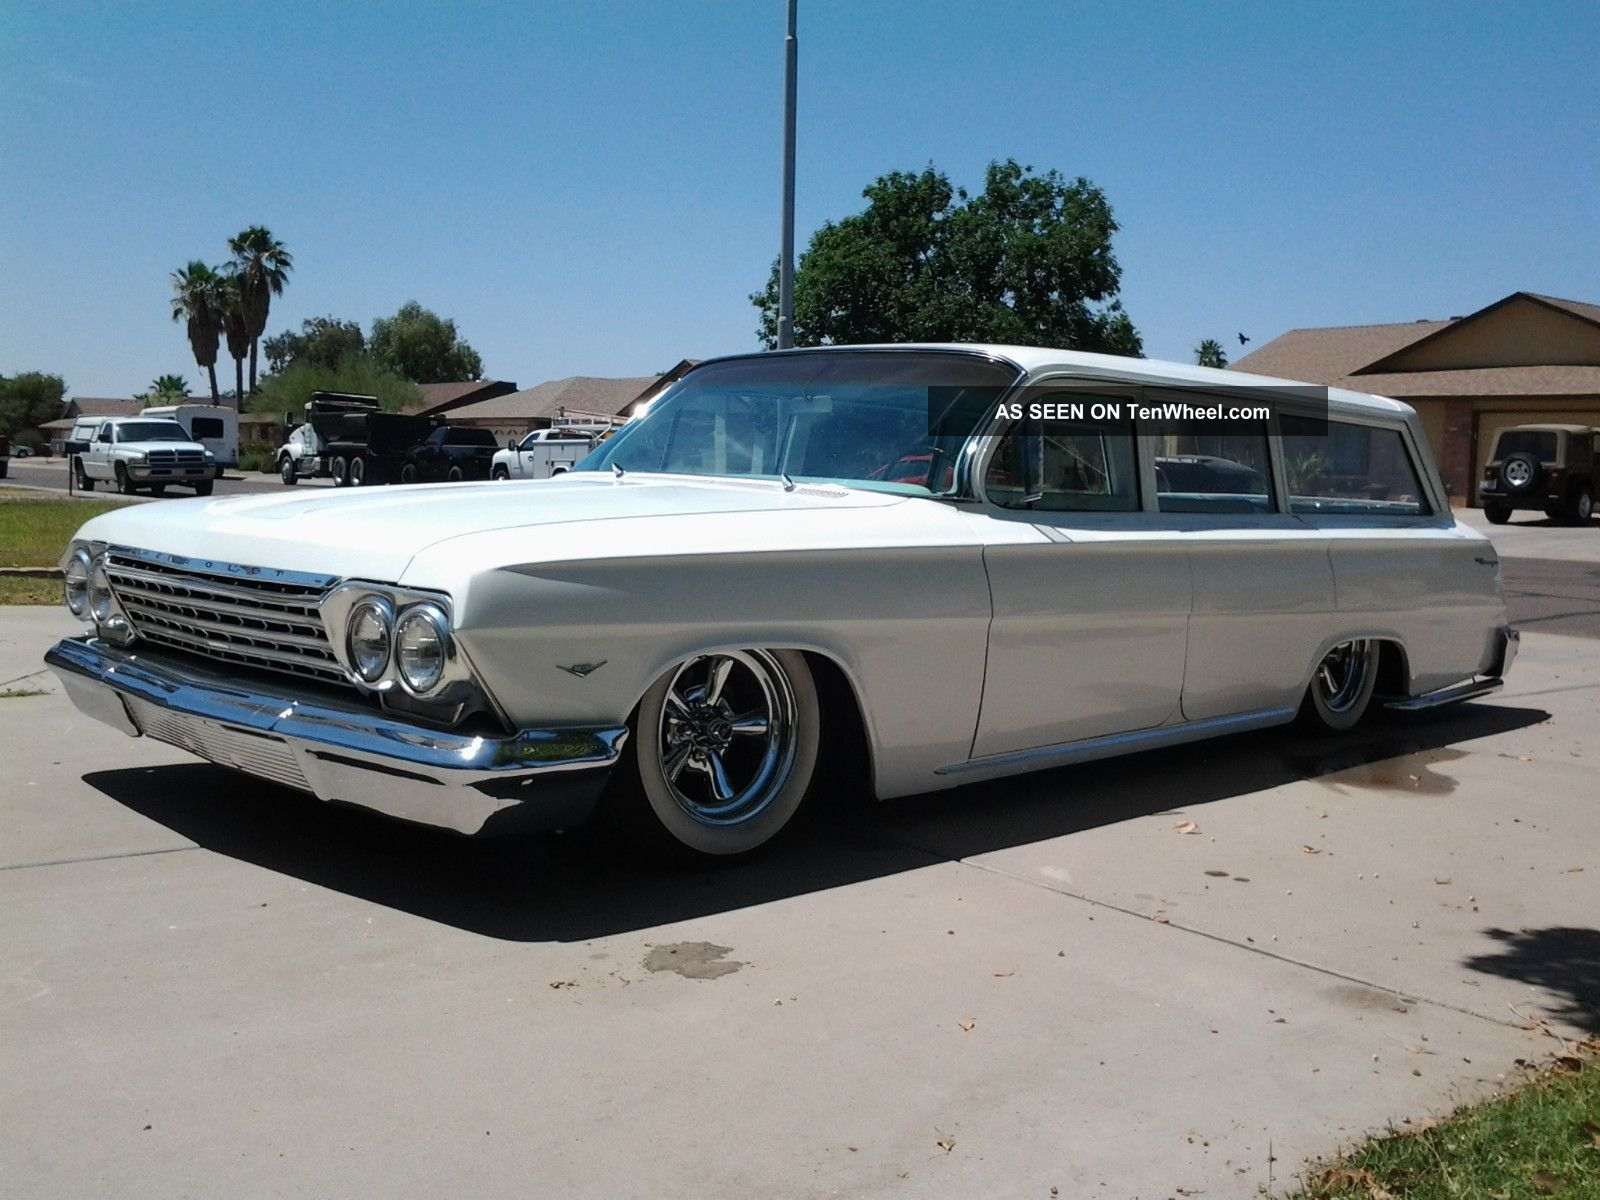 Amazing 1962 Chevrolet Four-door Wagon Pictures & Backgrounds